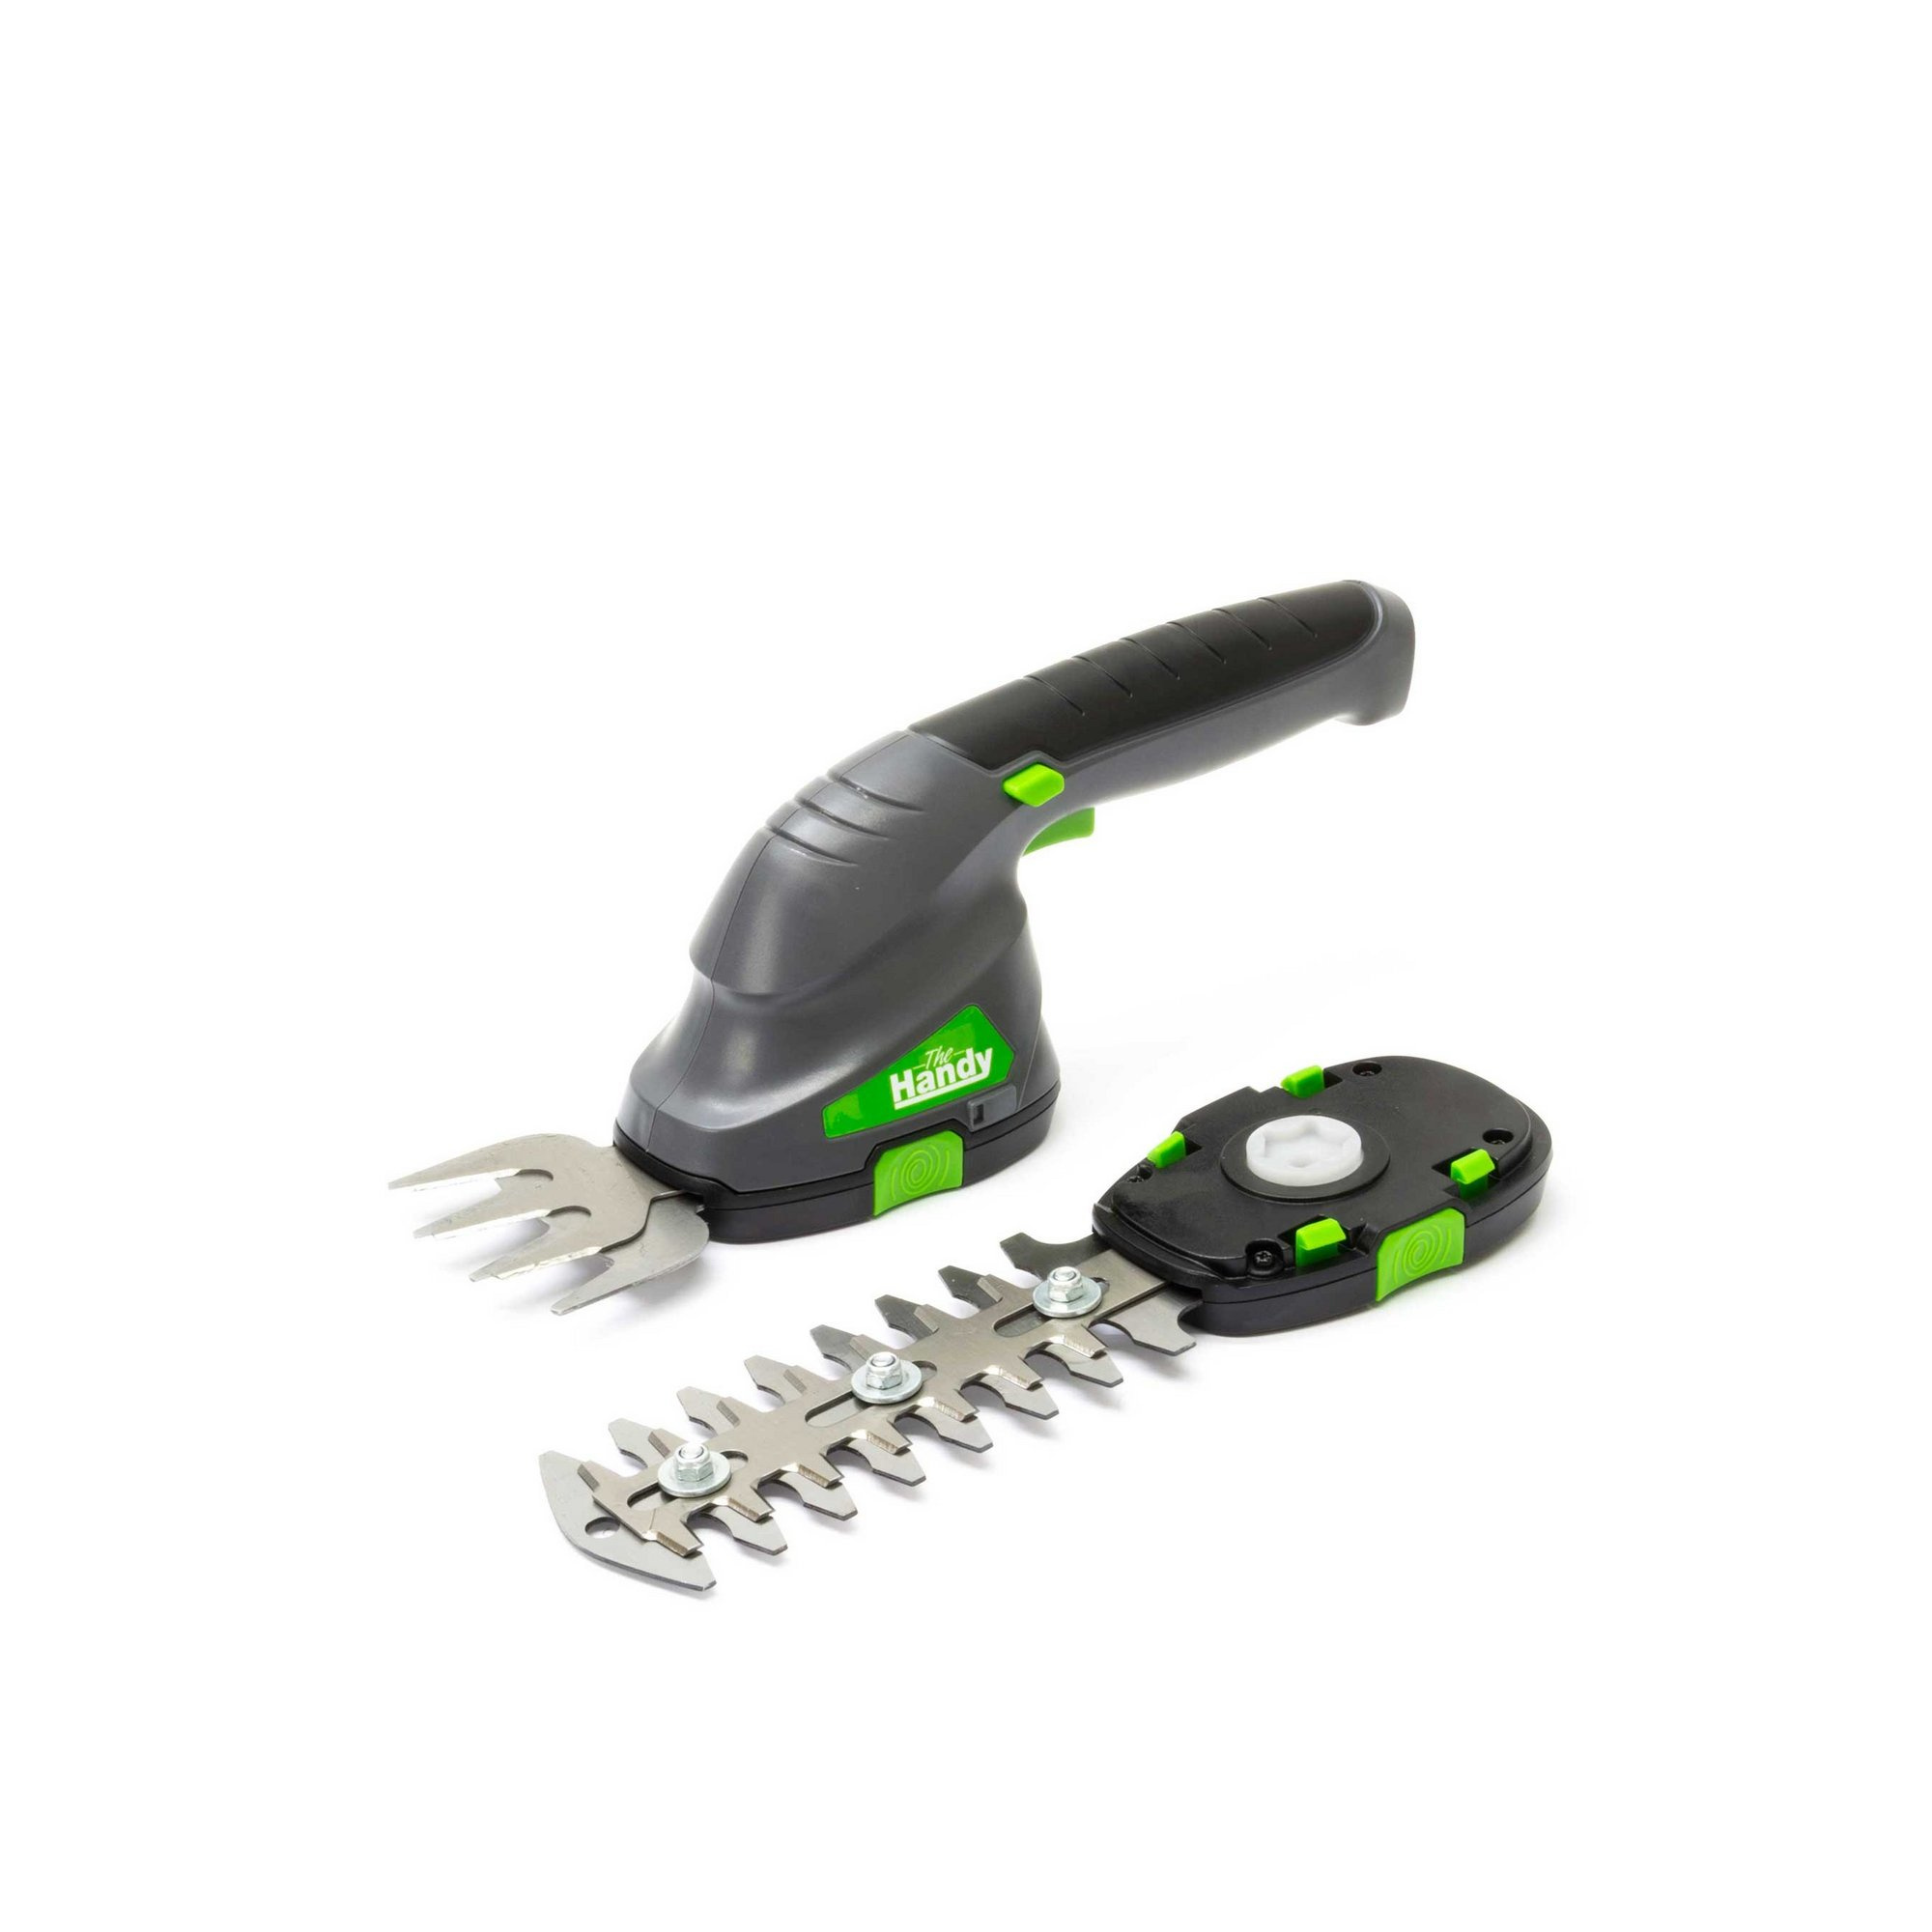 Image of 3.6v Lithium-Ion Cordless Shrub Shear and Grass Blades